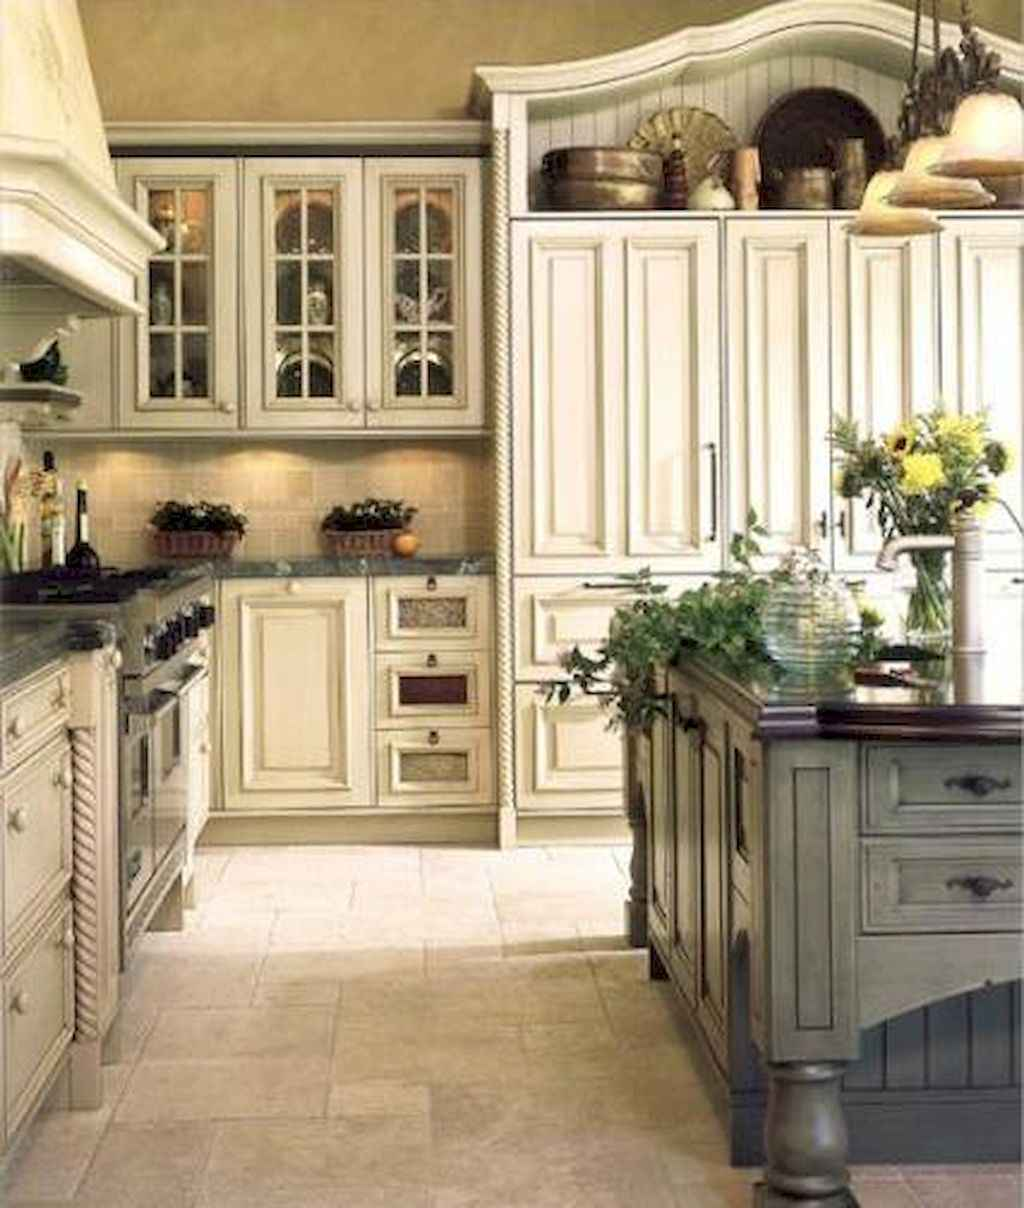 Incredible french country kitchen design ideas (22)